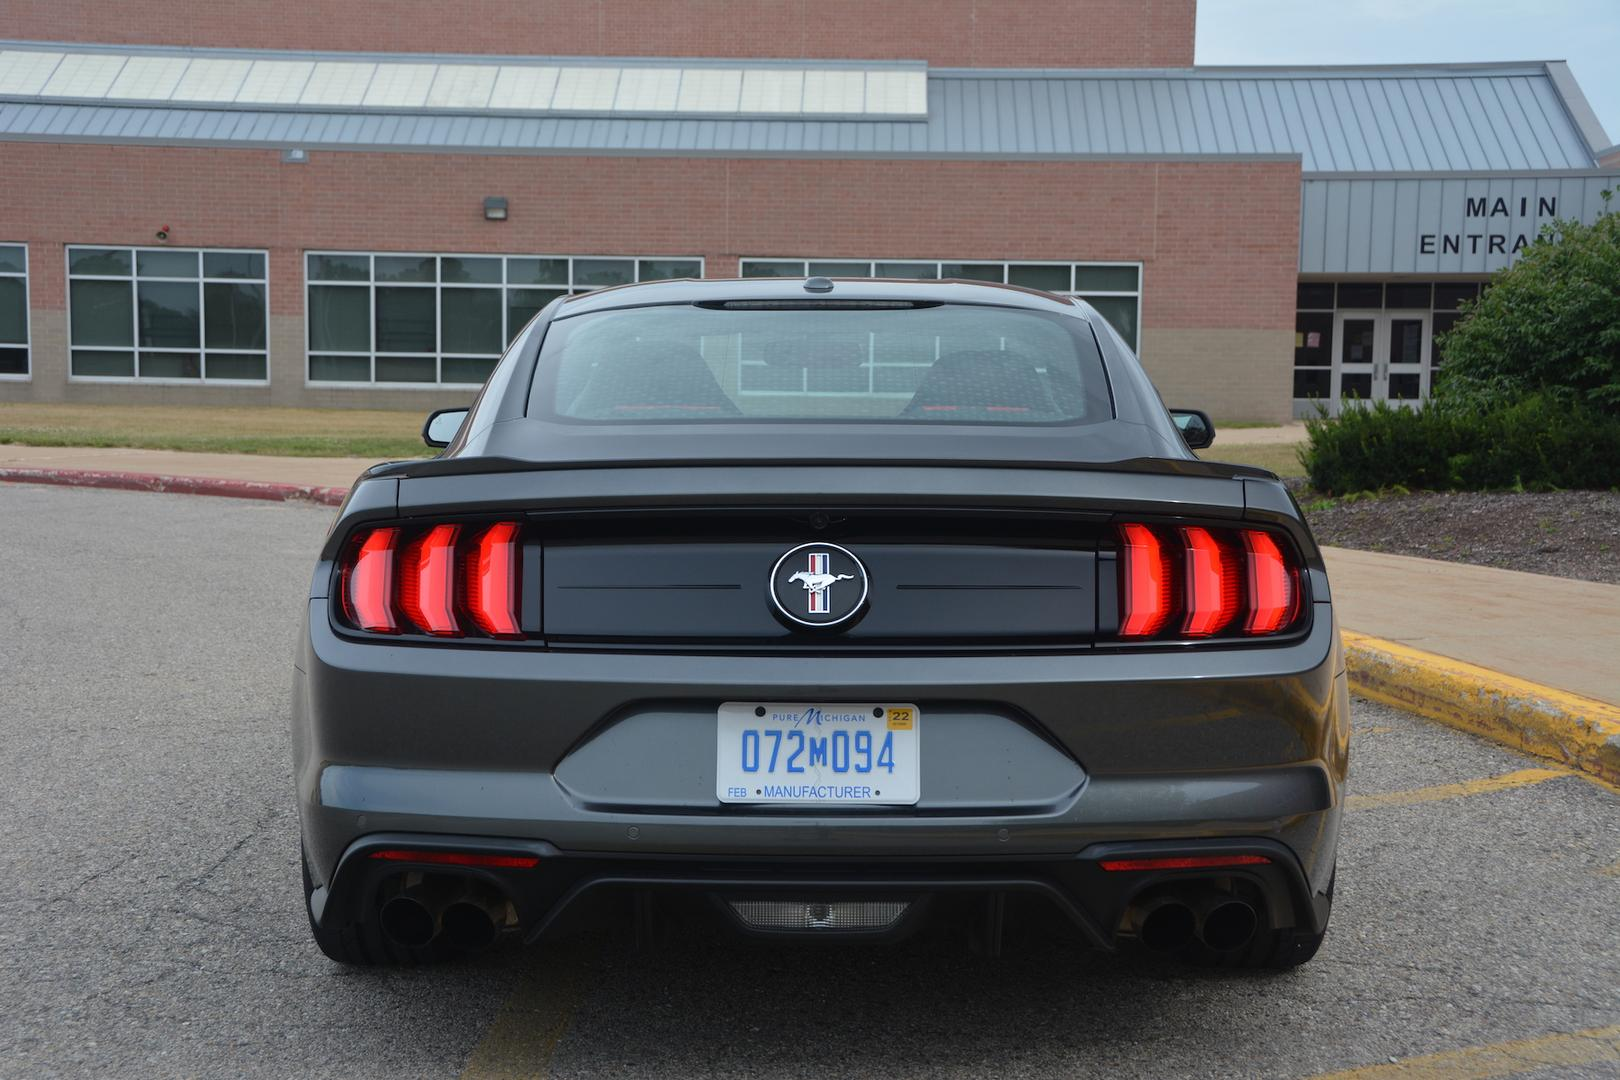 Ford Mustang EcoBoost Rear